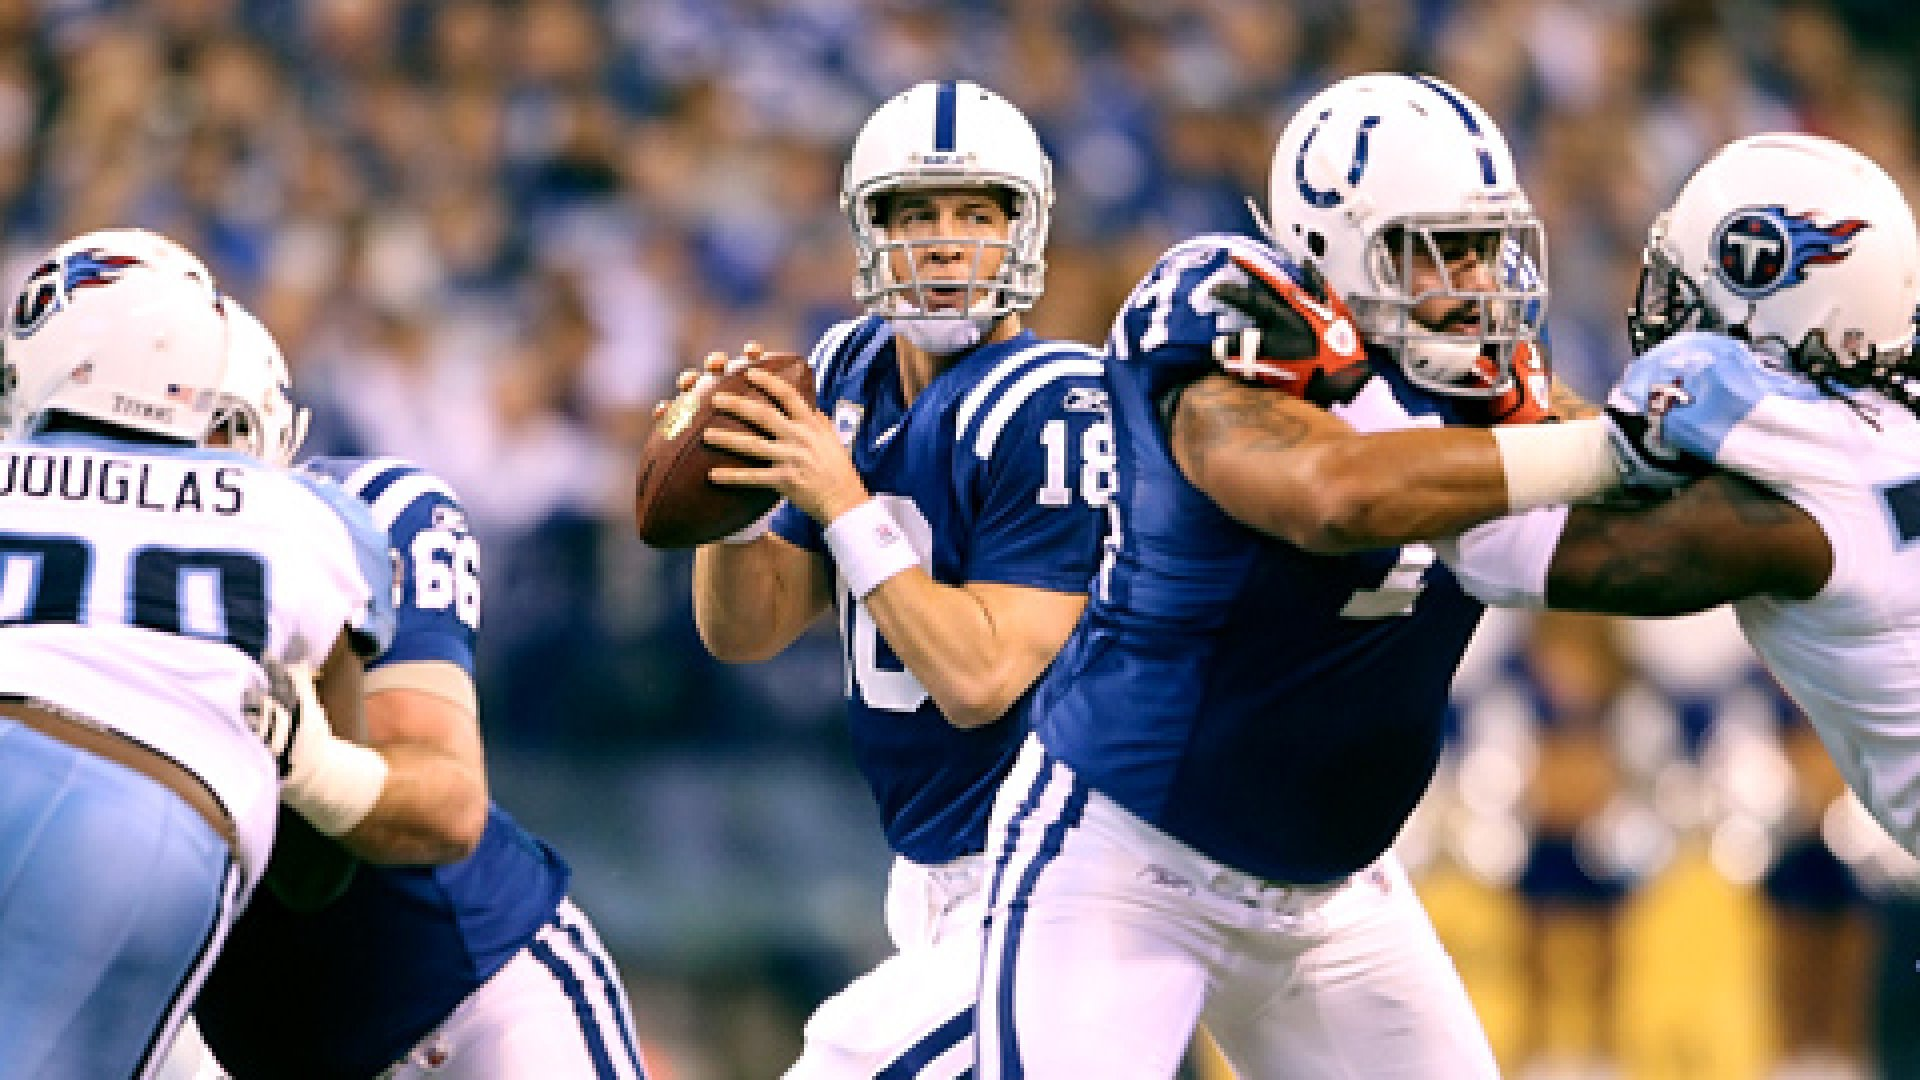 Peyton Manning during a game against the Tennessee Titans at Lucas Oil Stadium